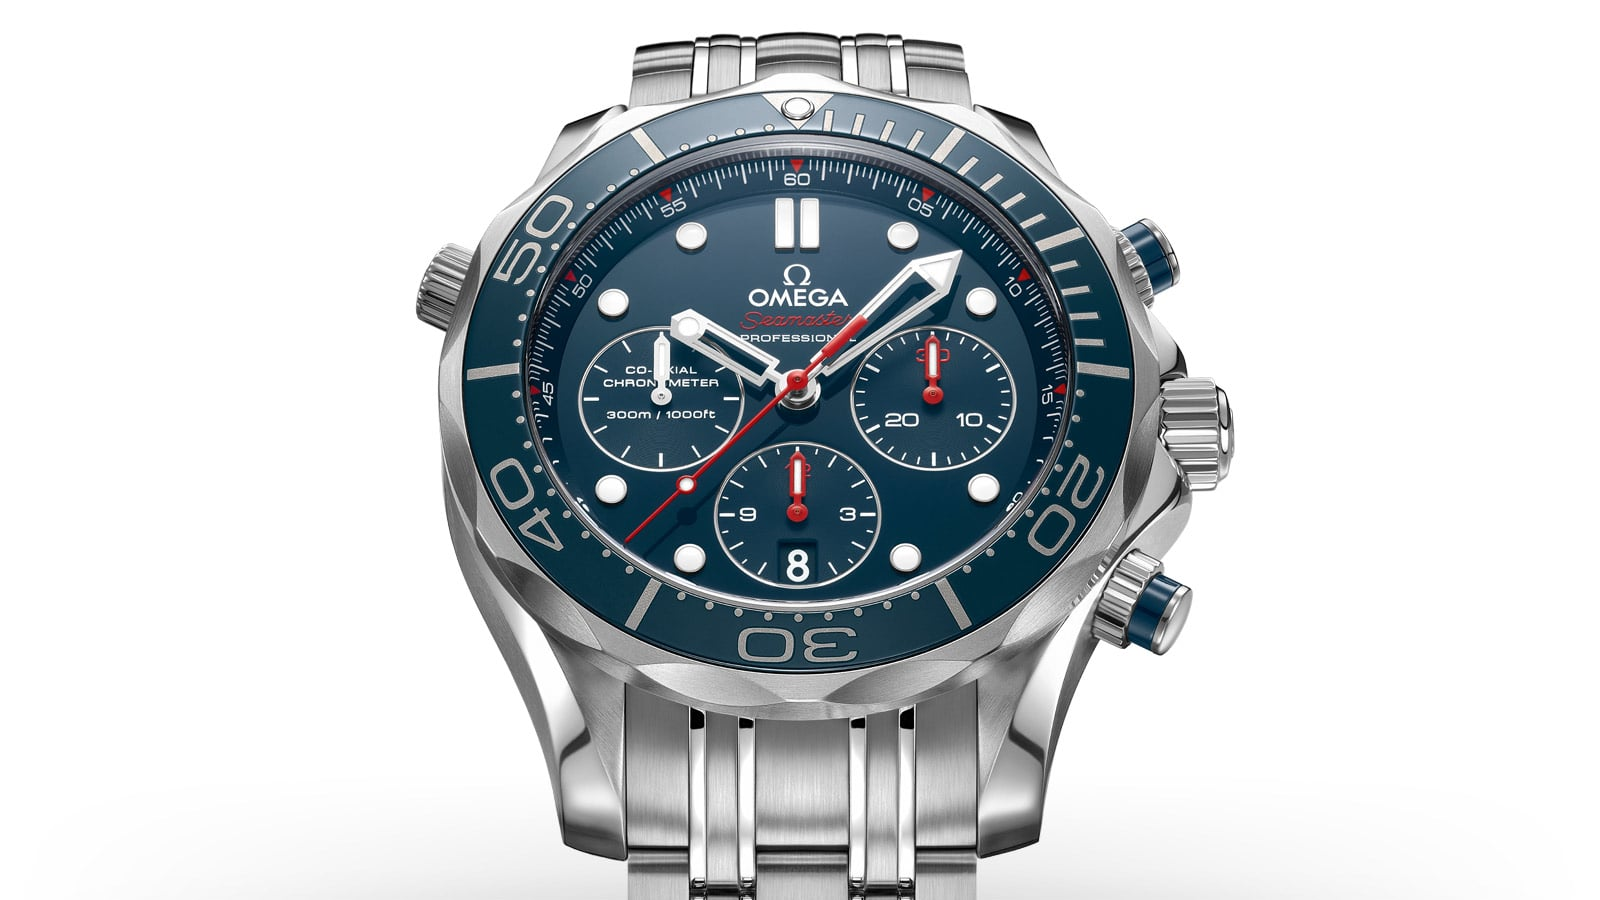 Seamaster diver 300 m gents 39 collection omega - Omega dive watch ...